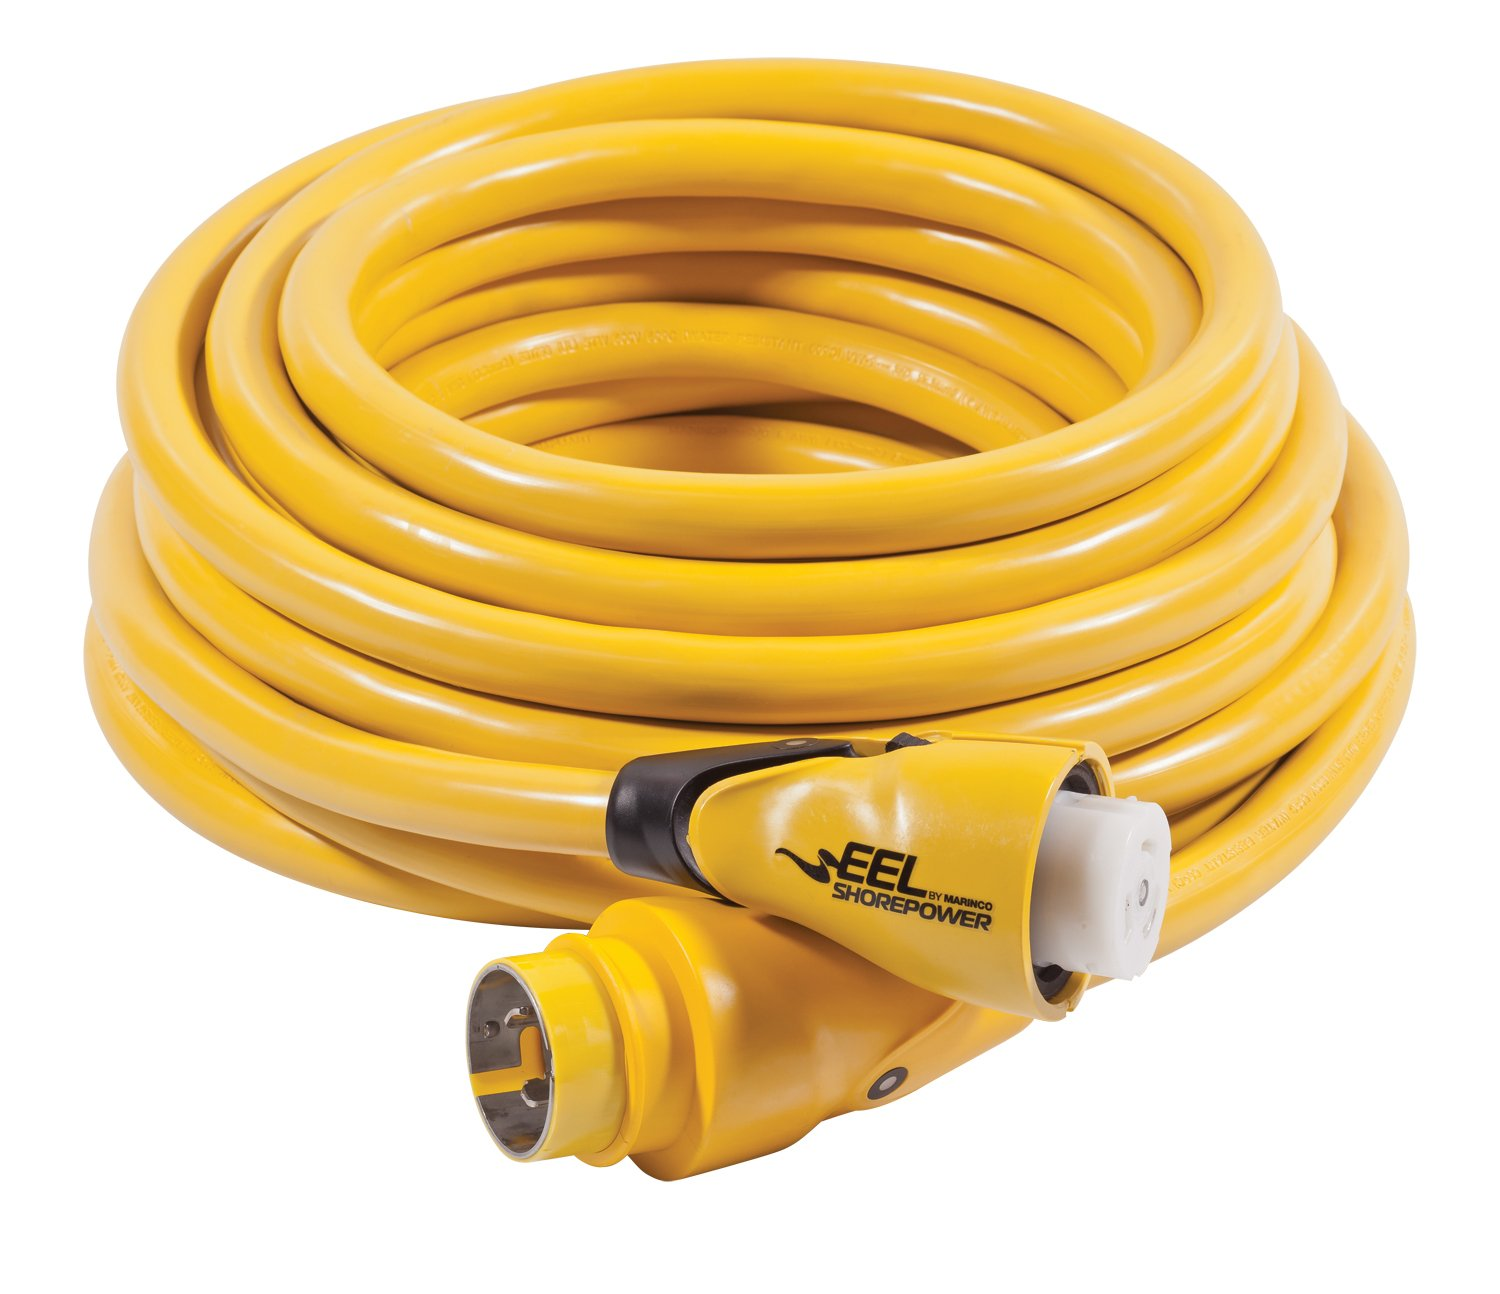 Marinco Eel Shorepower Cordsets Boating Shore Power Plug Wiring Diagram Cords Sports Outdoors